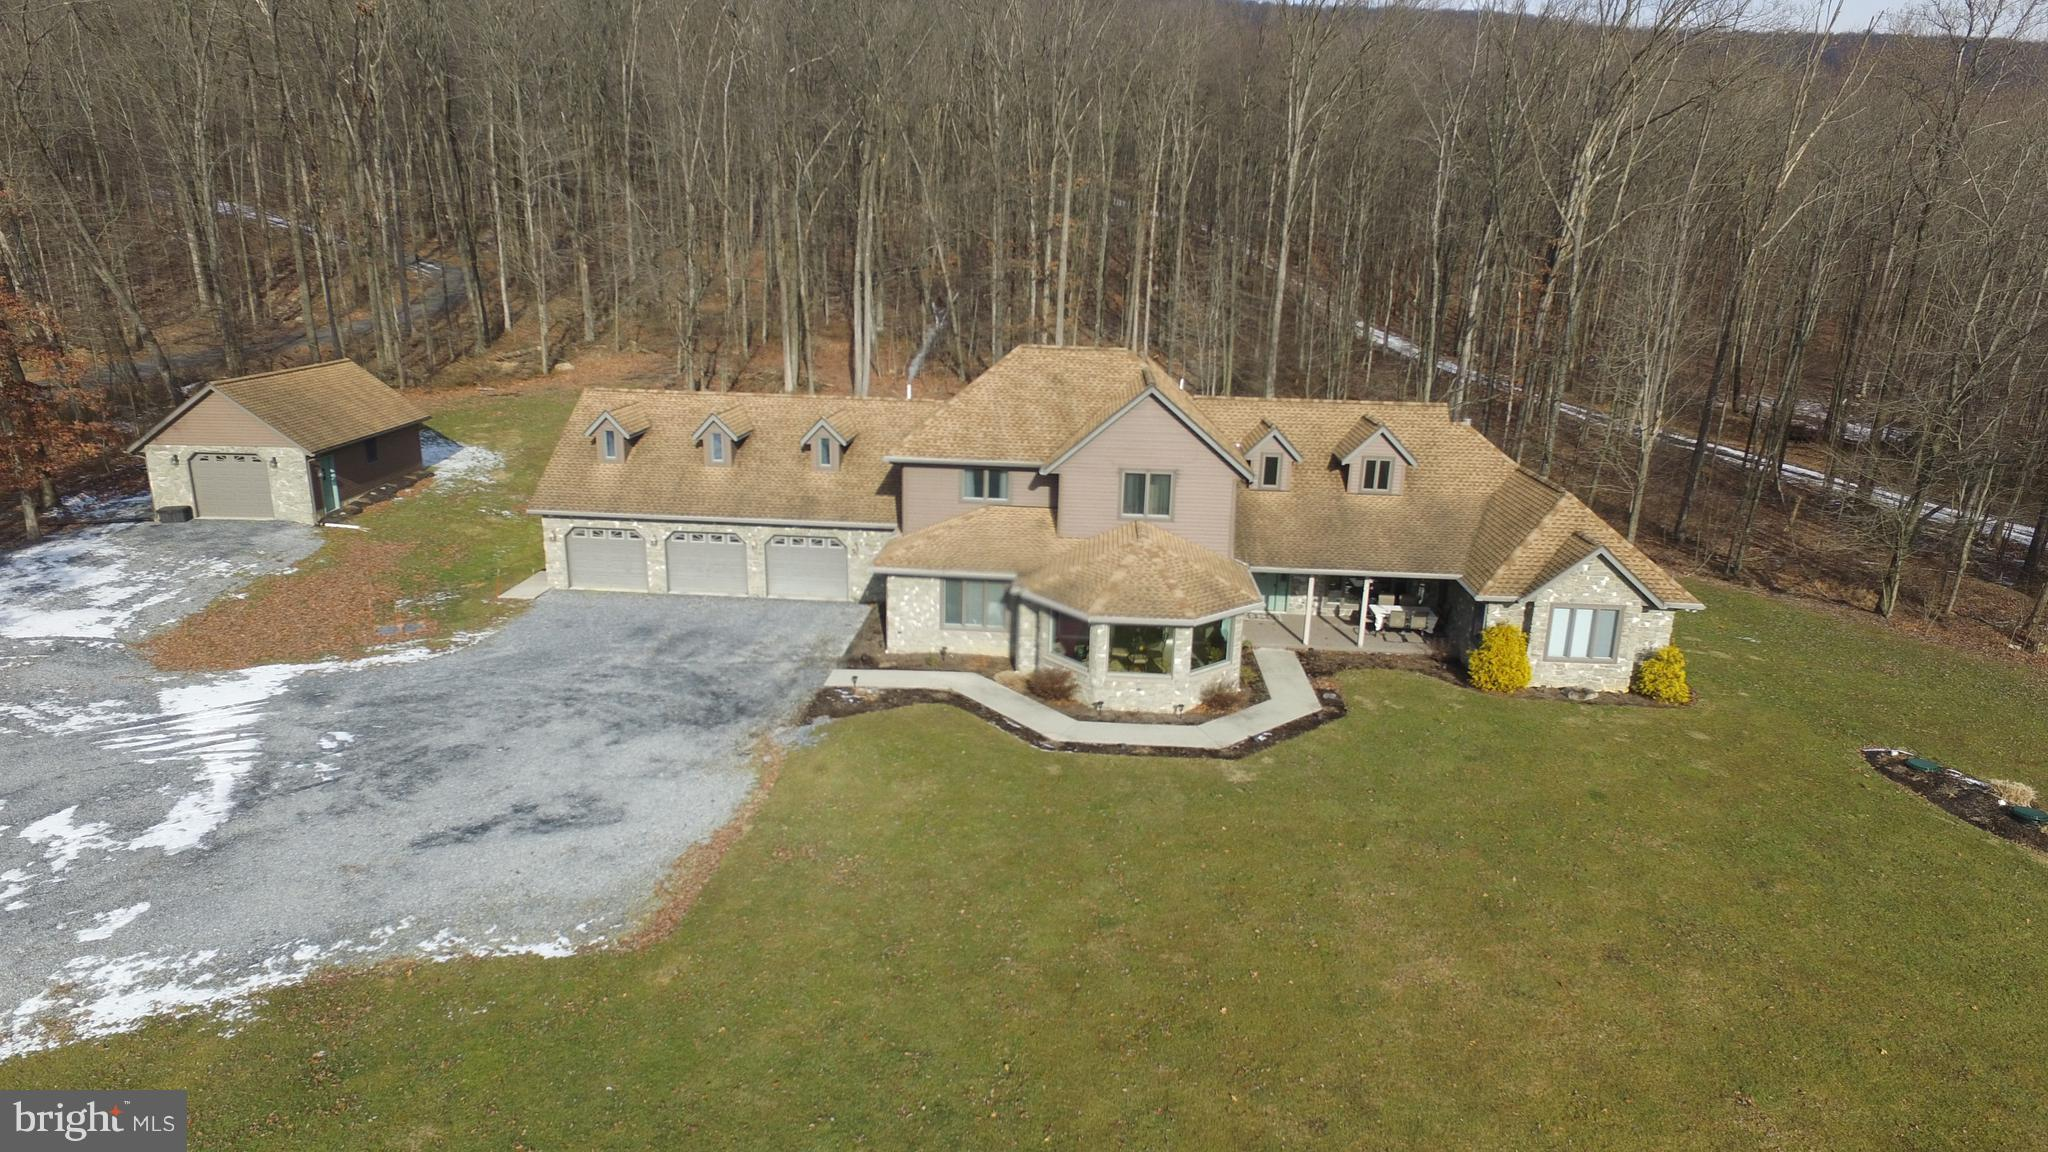 131 CAMP STRAUSS ROAD, BETHEL, PA 19507